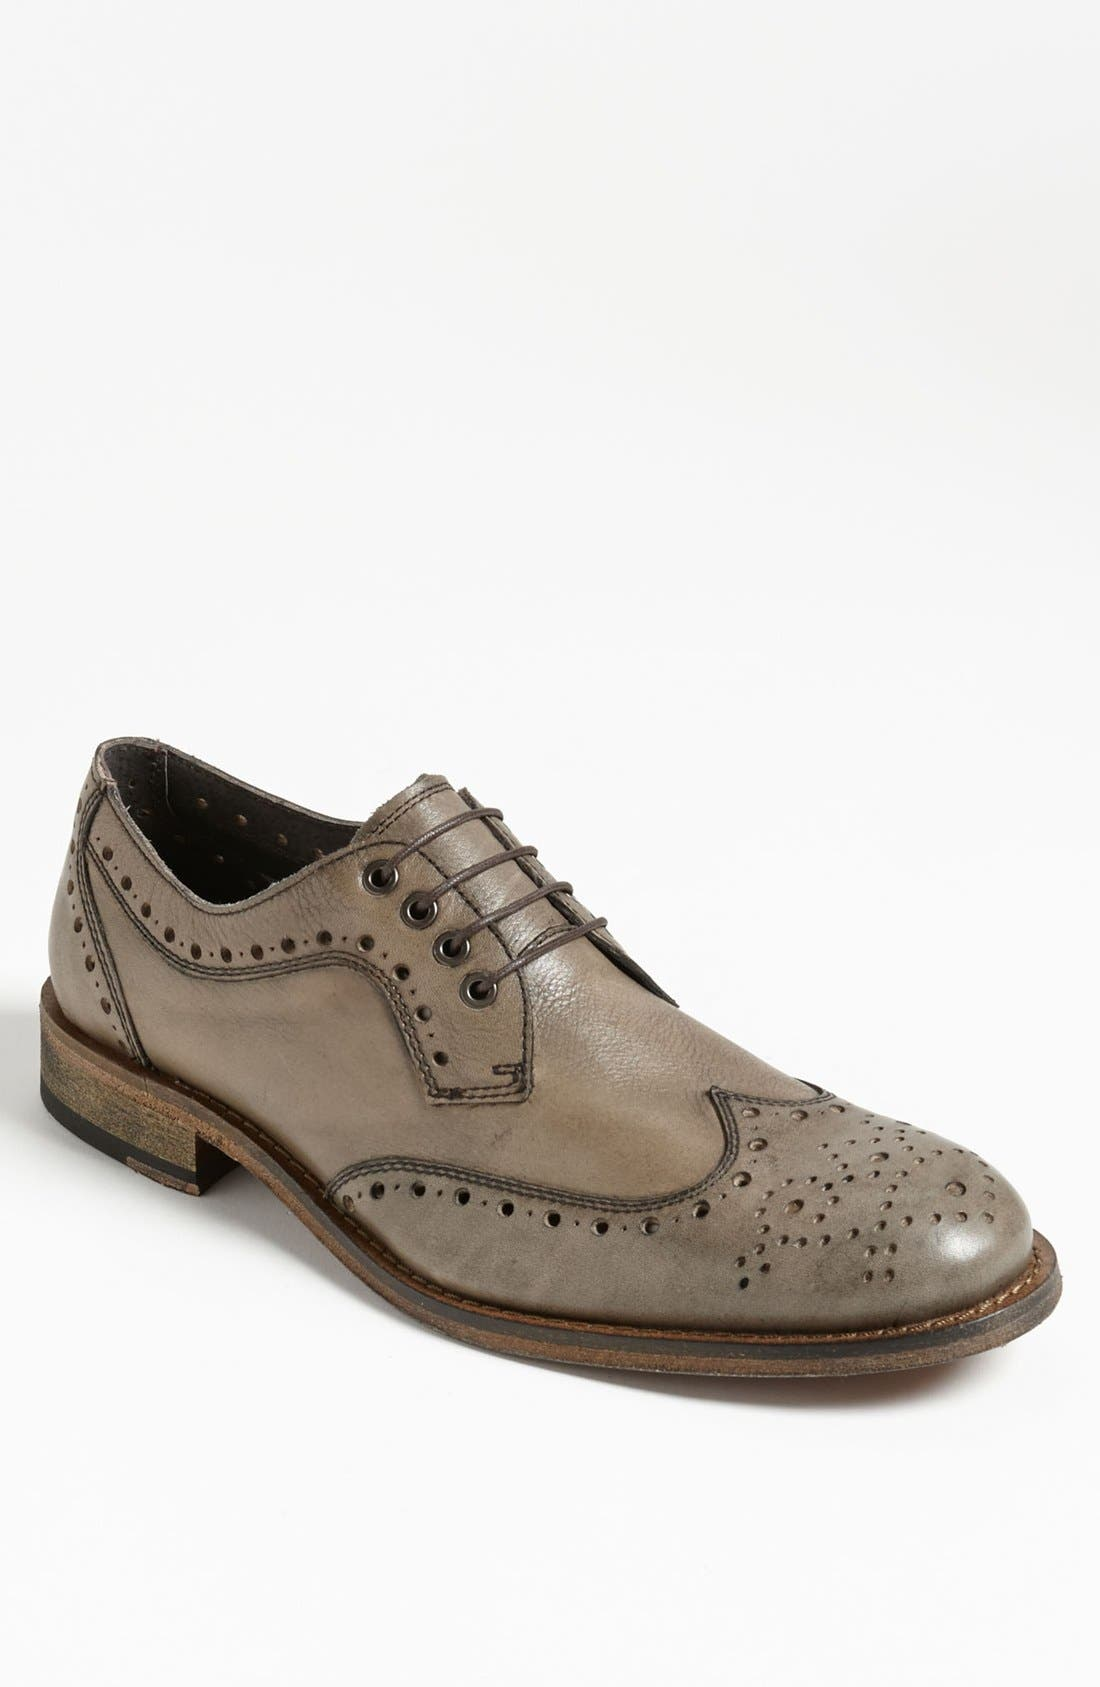 Alternate Image 1 Selected - Kenneth Cole New York 'Bear N Mind' Wingtip